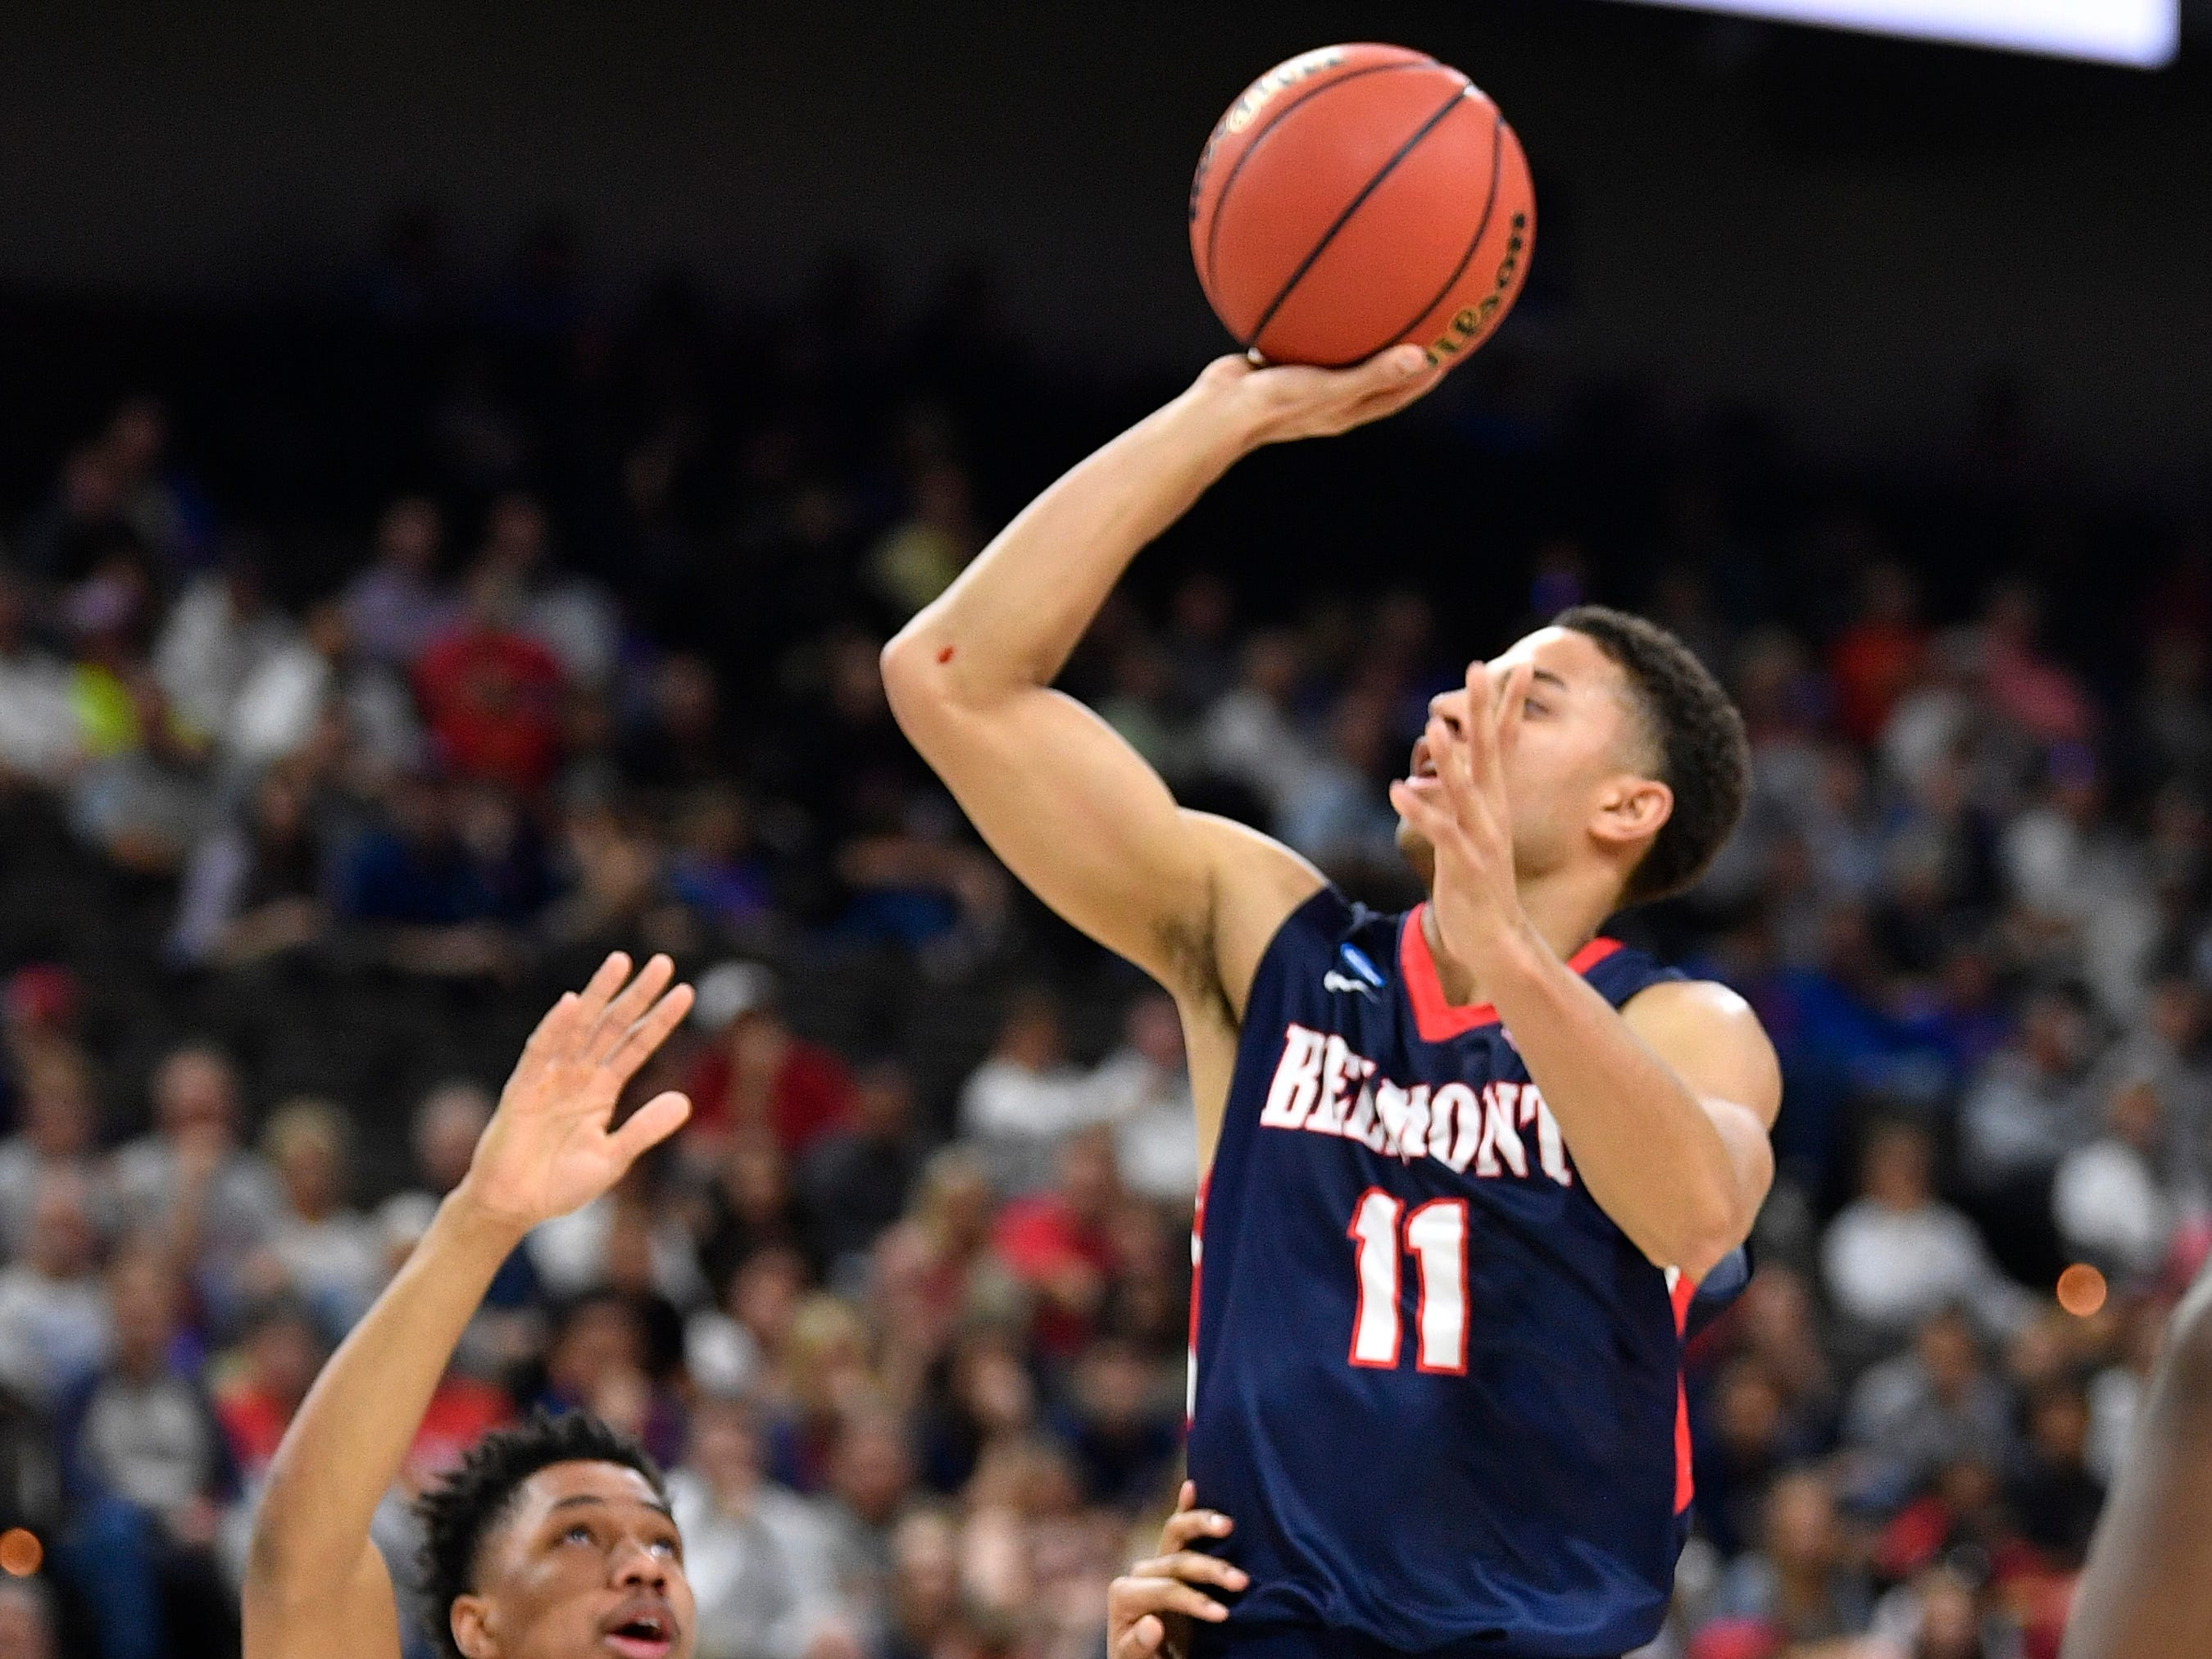 Belmont guard Kevin McClain (11) shoots over Maryland guard Aaron Wiggins (2) during the first half of the first-round NCAA college basketball tournament game at VyStar Veterans Memorial Arena in Jacksonville, Fla., Thursday, March 21, 2019.